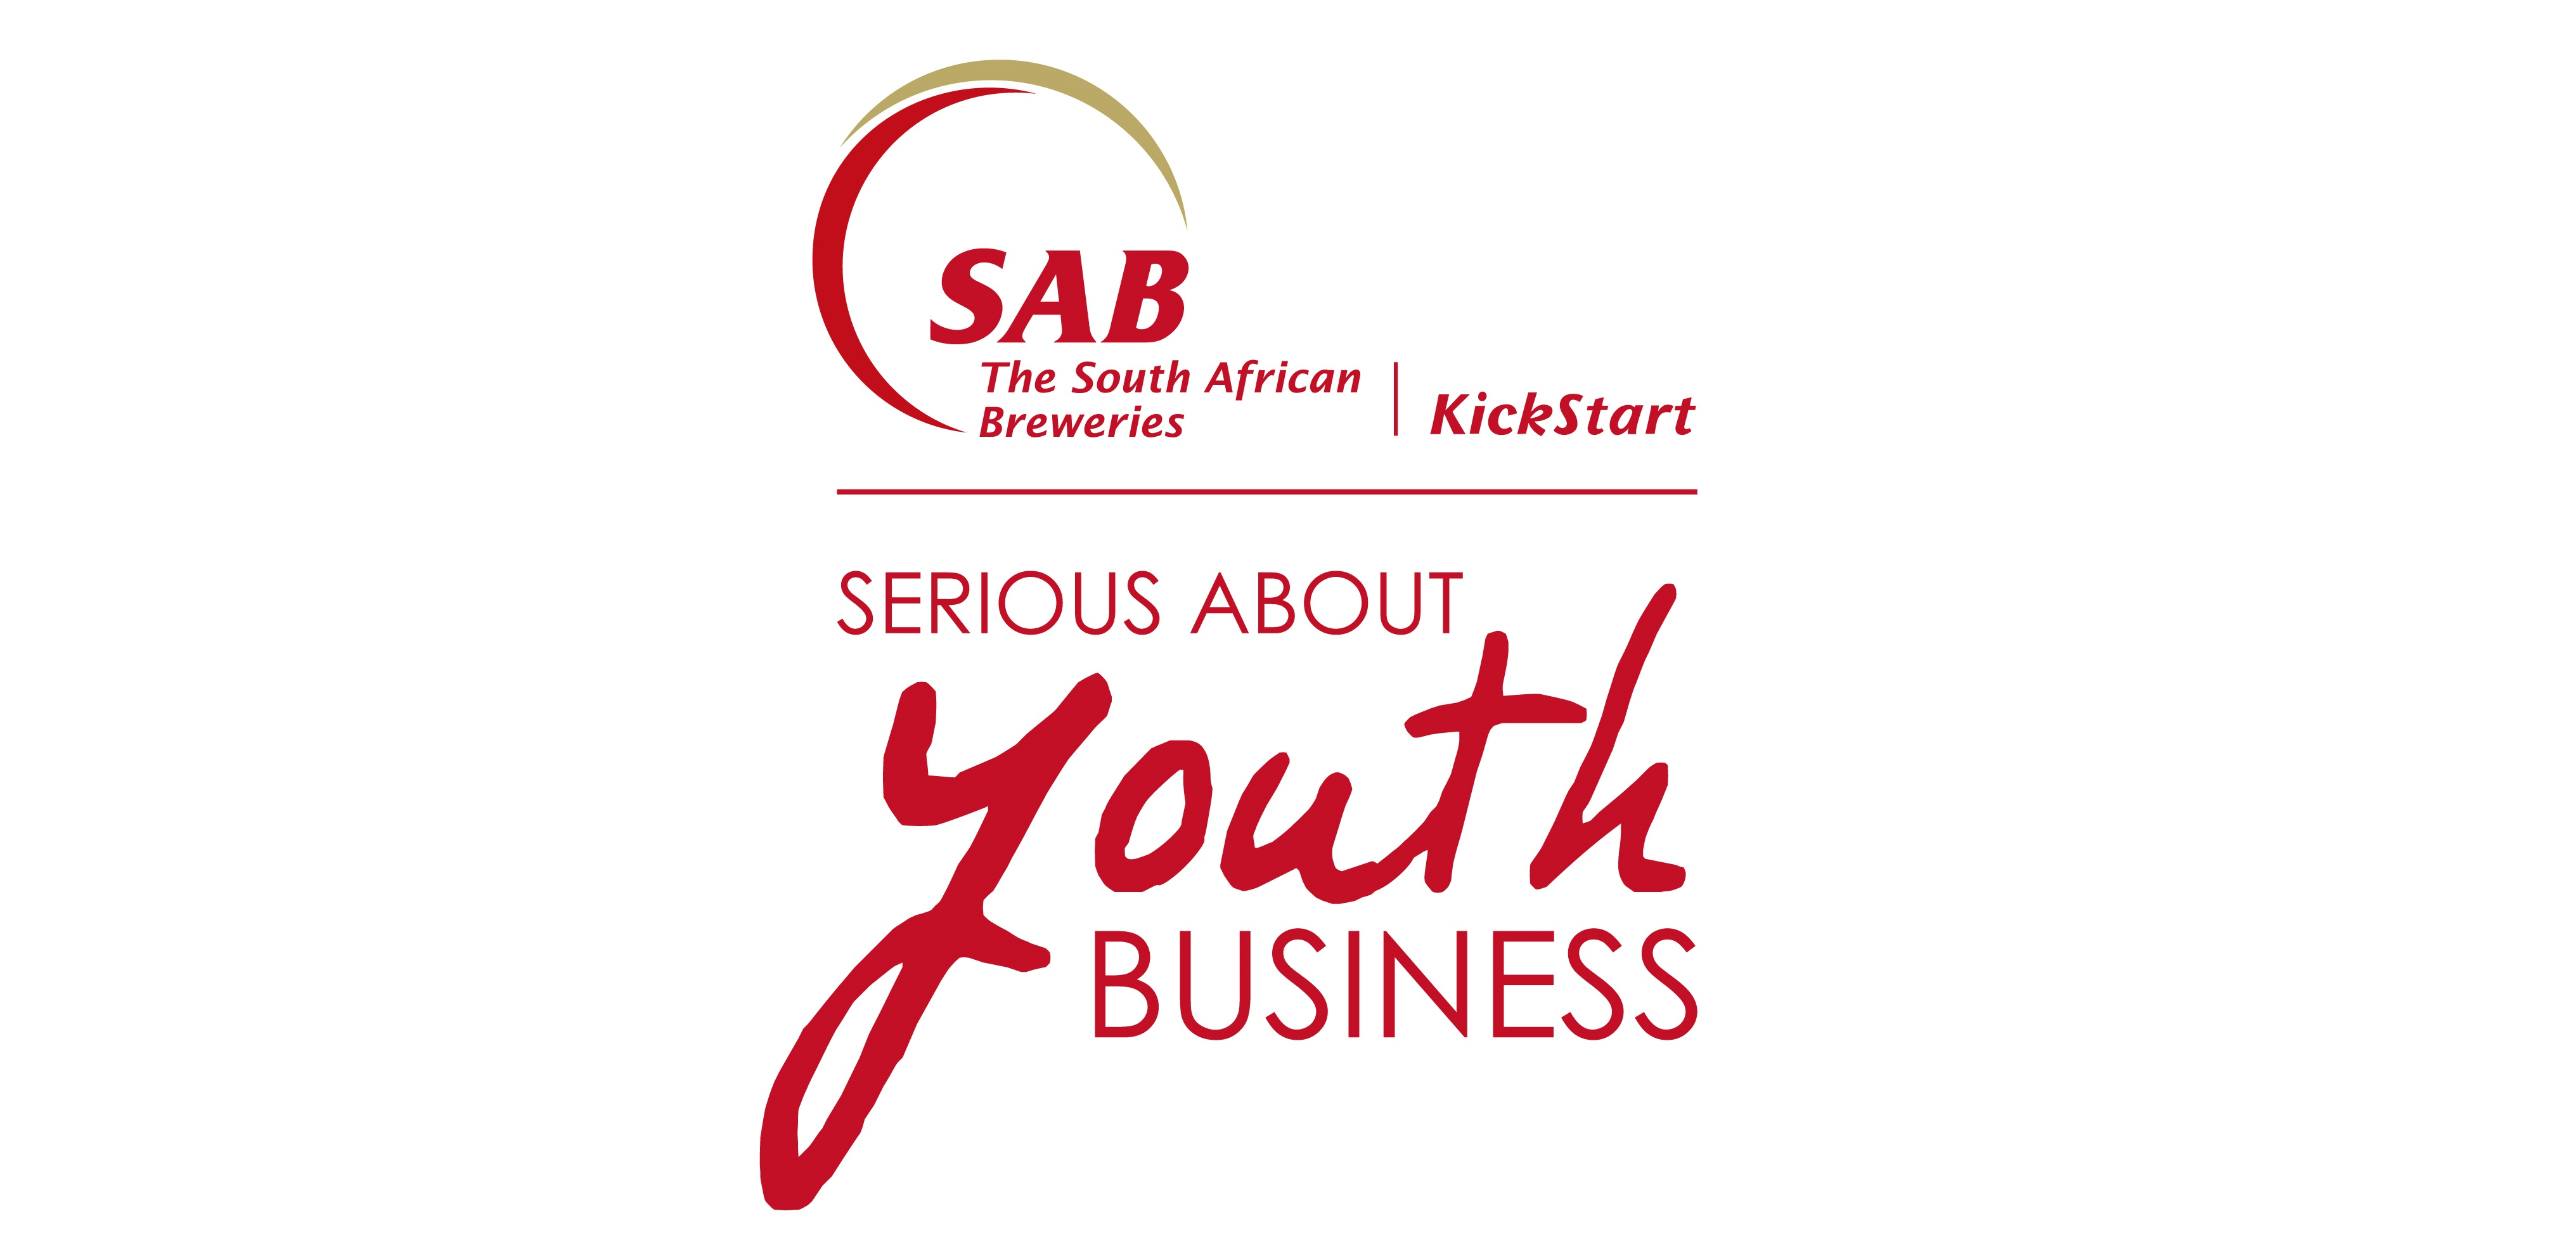 KickStart - Serious About Youth Business